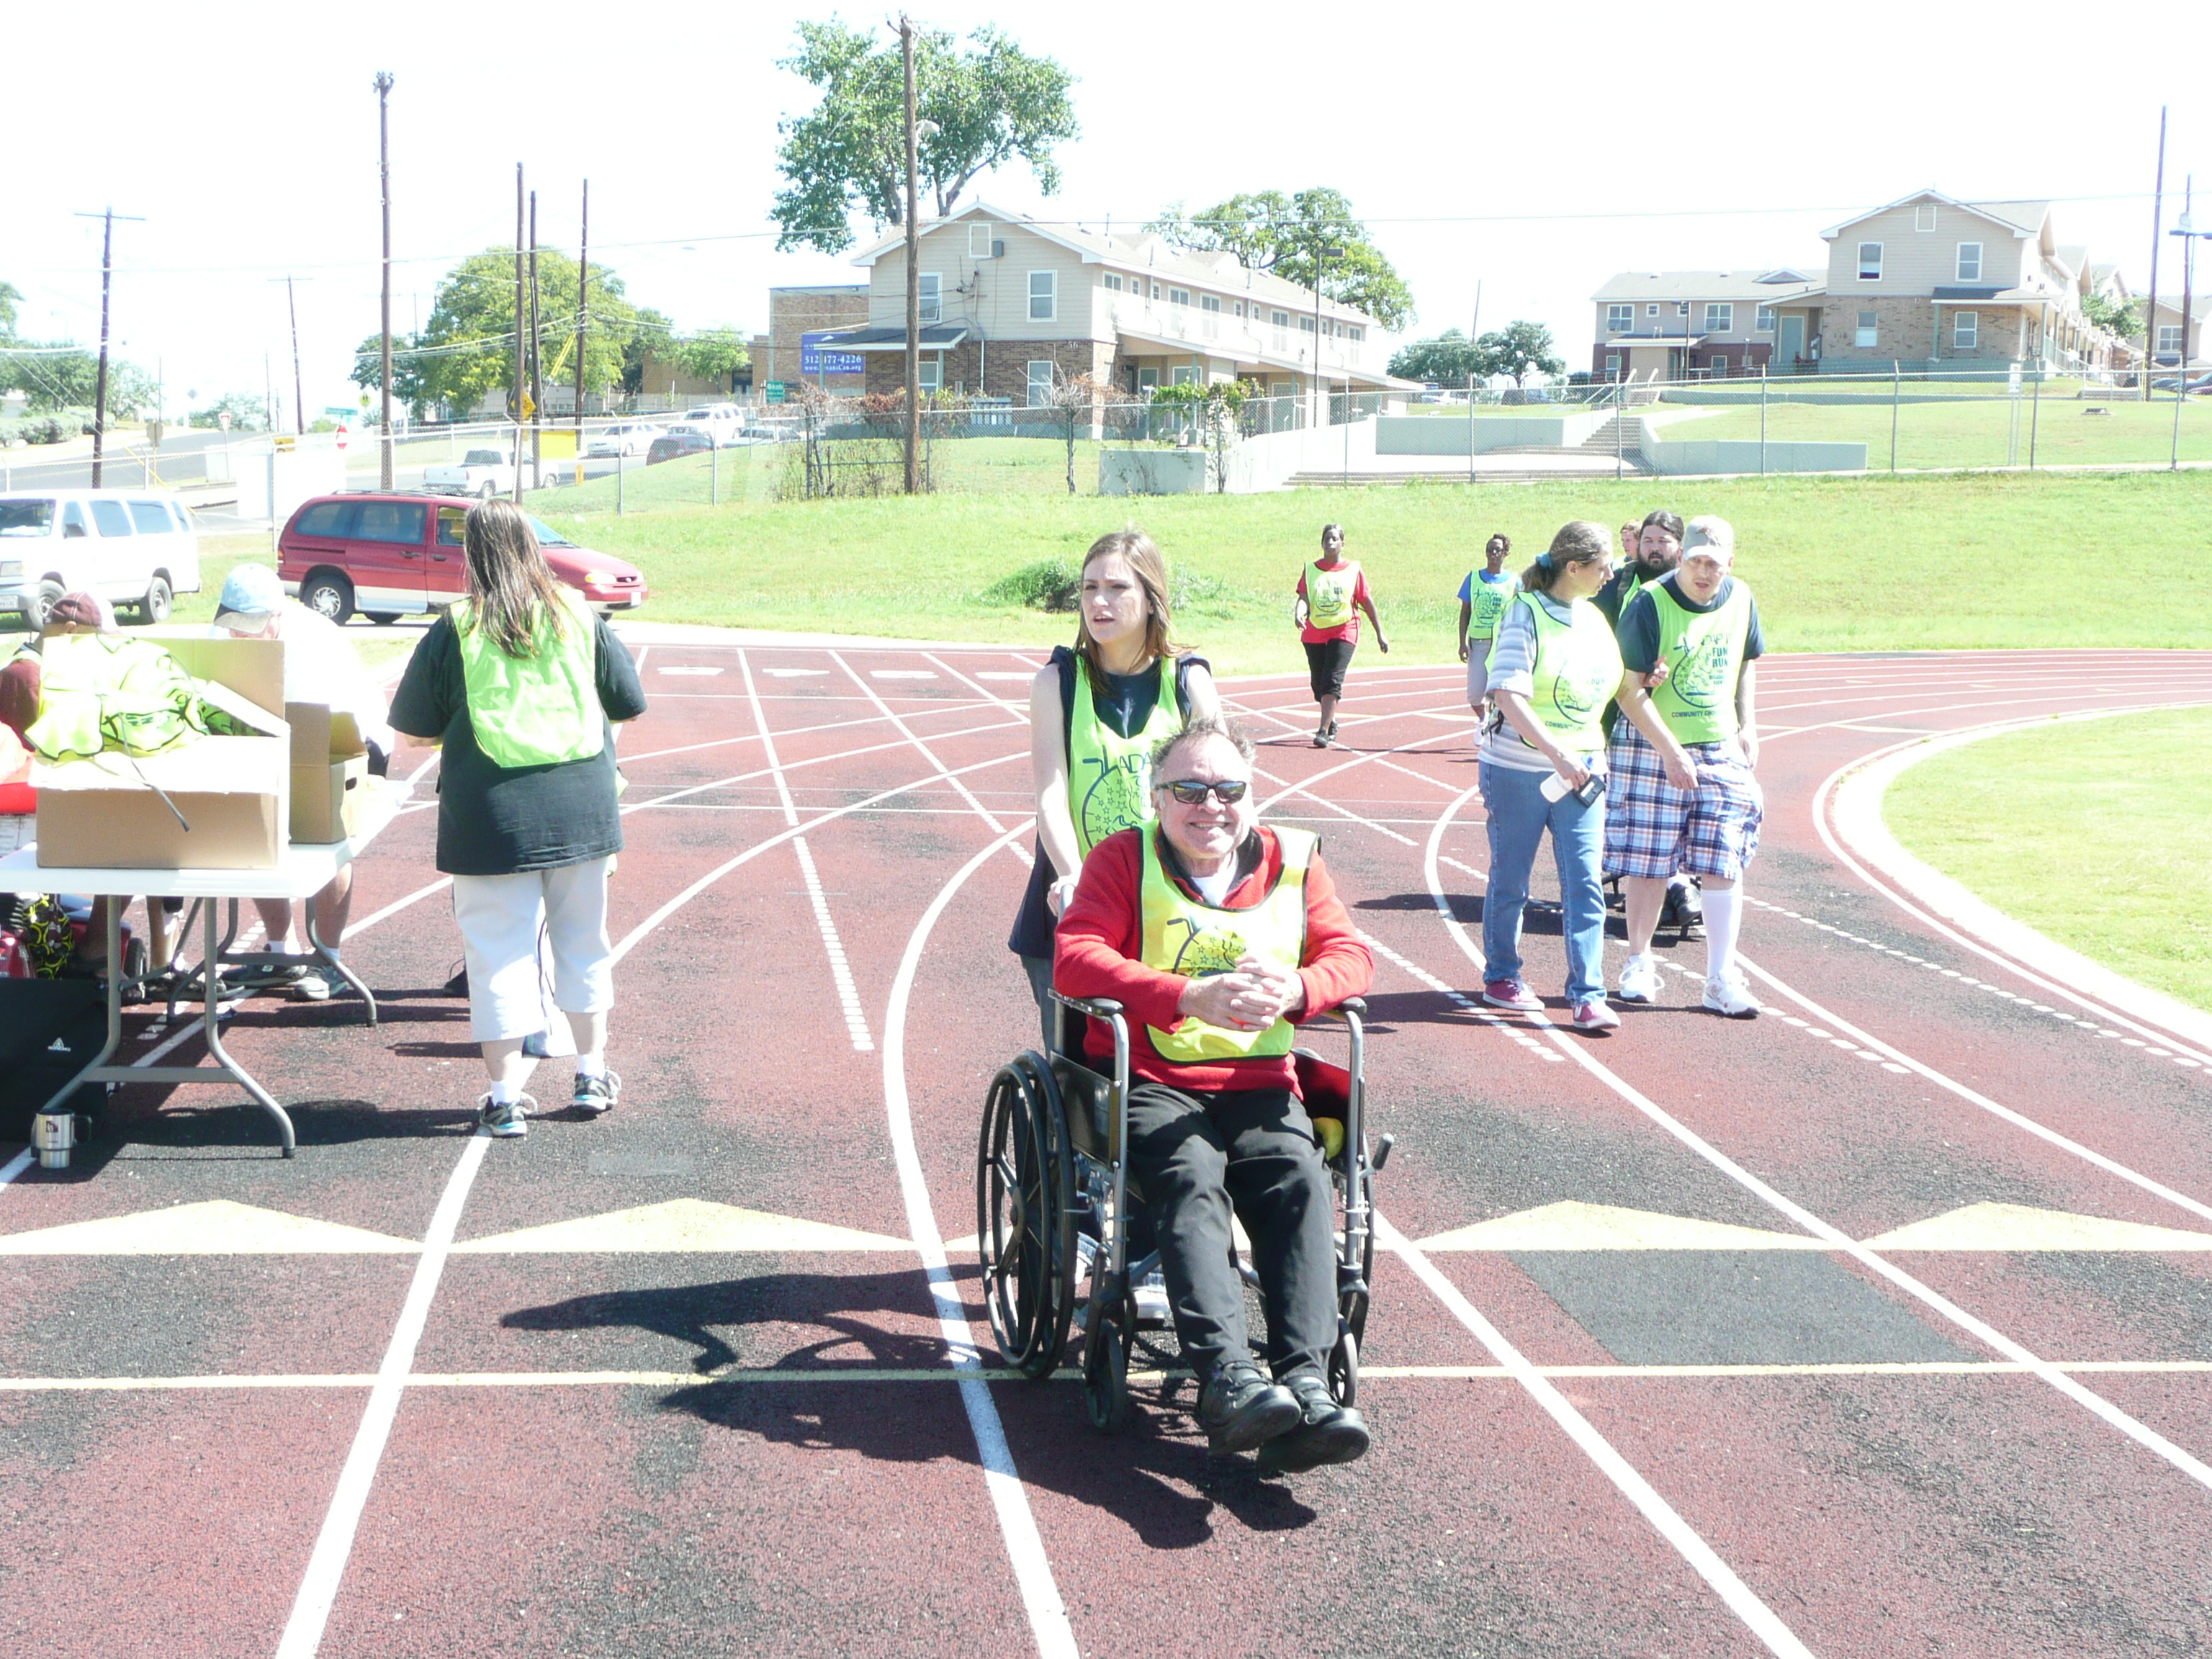 woman pushes man in a wheelchair while other people walk and run behind them on the track. On left side of picture woman walks up to a table.